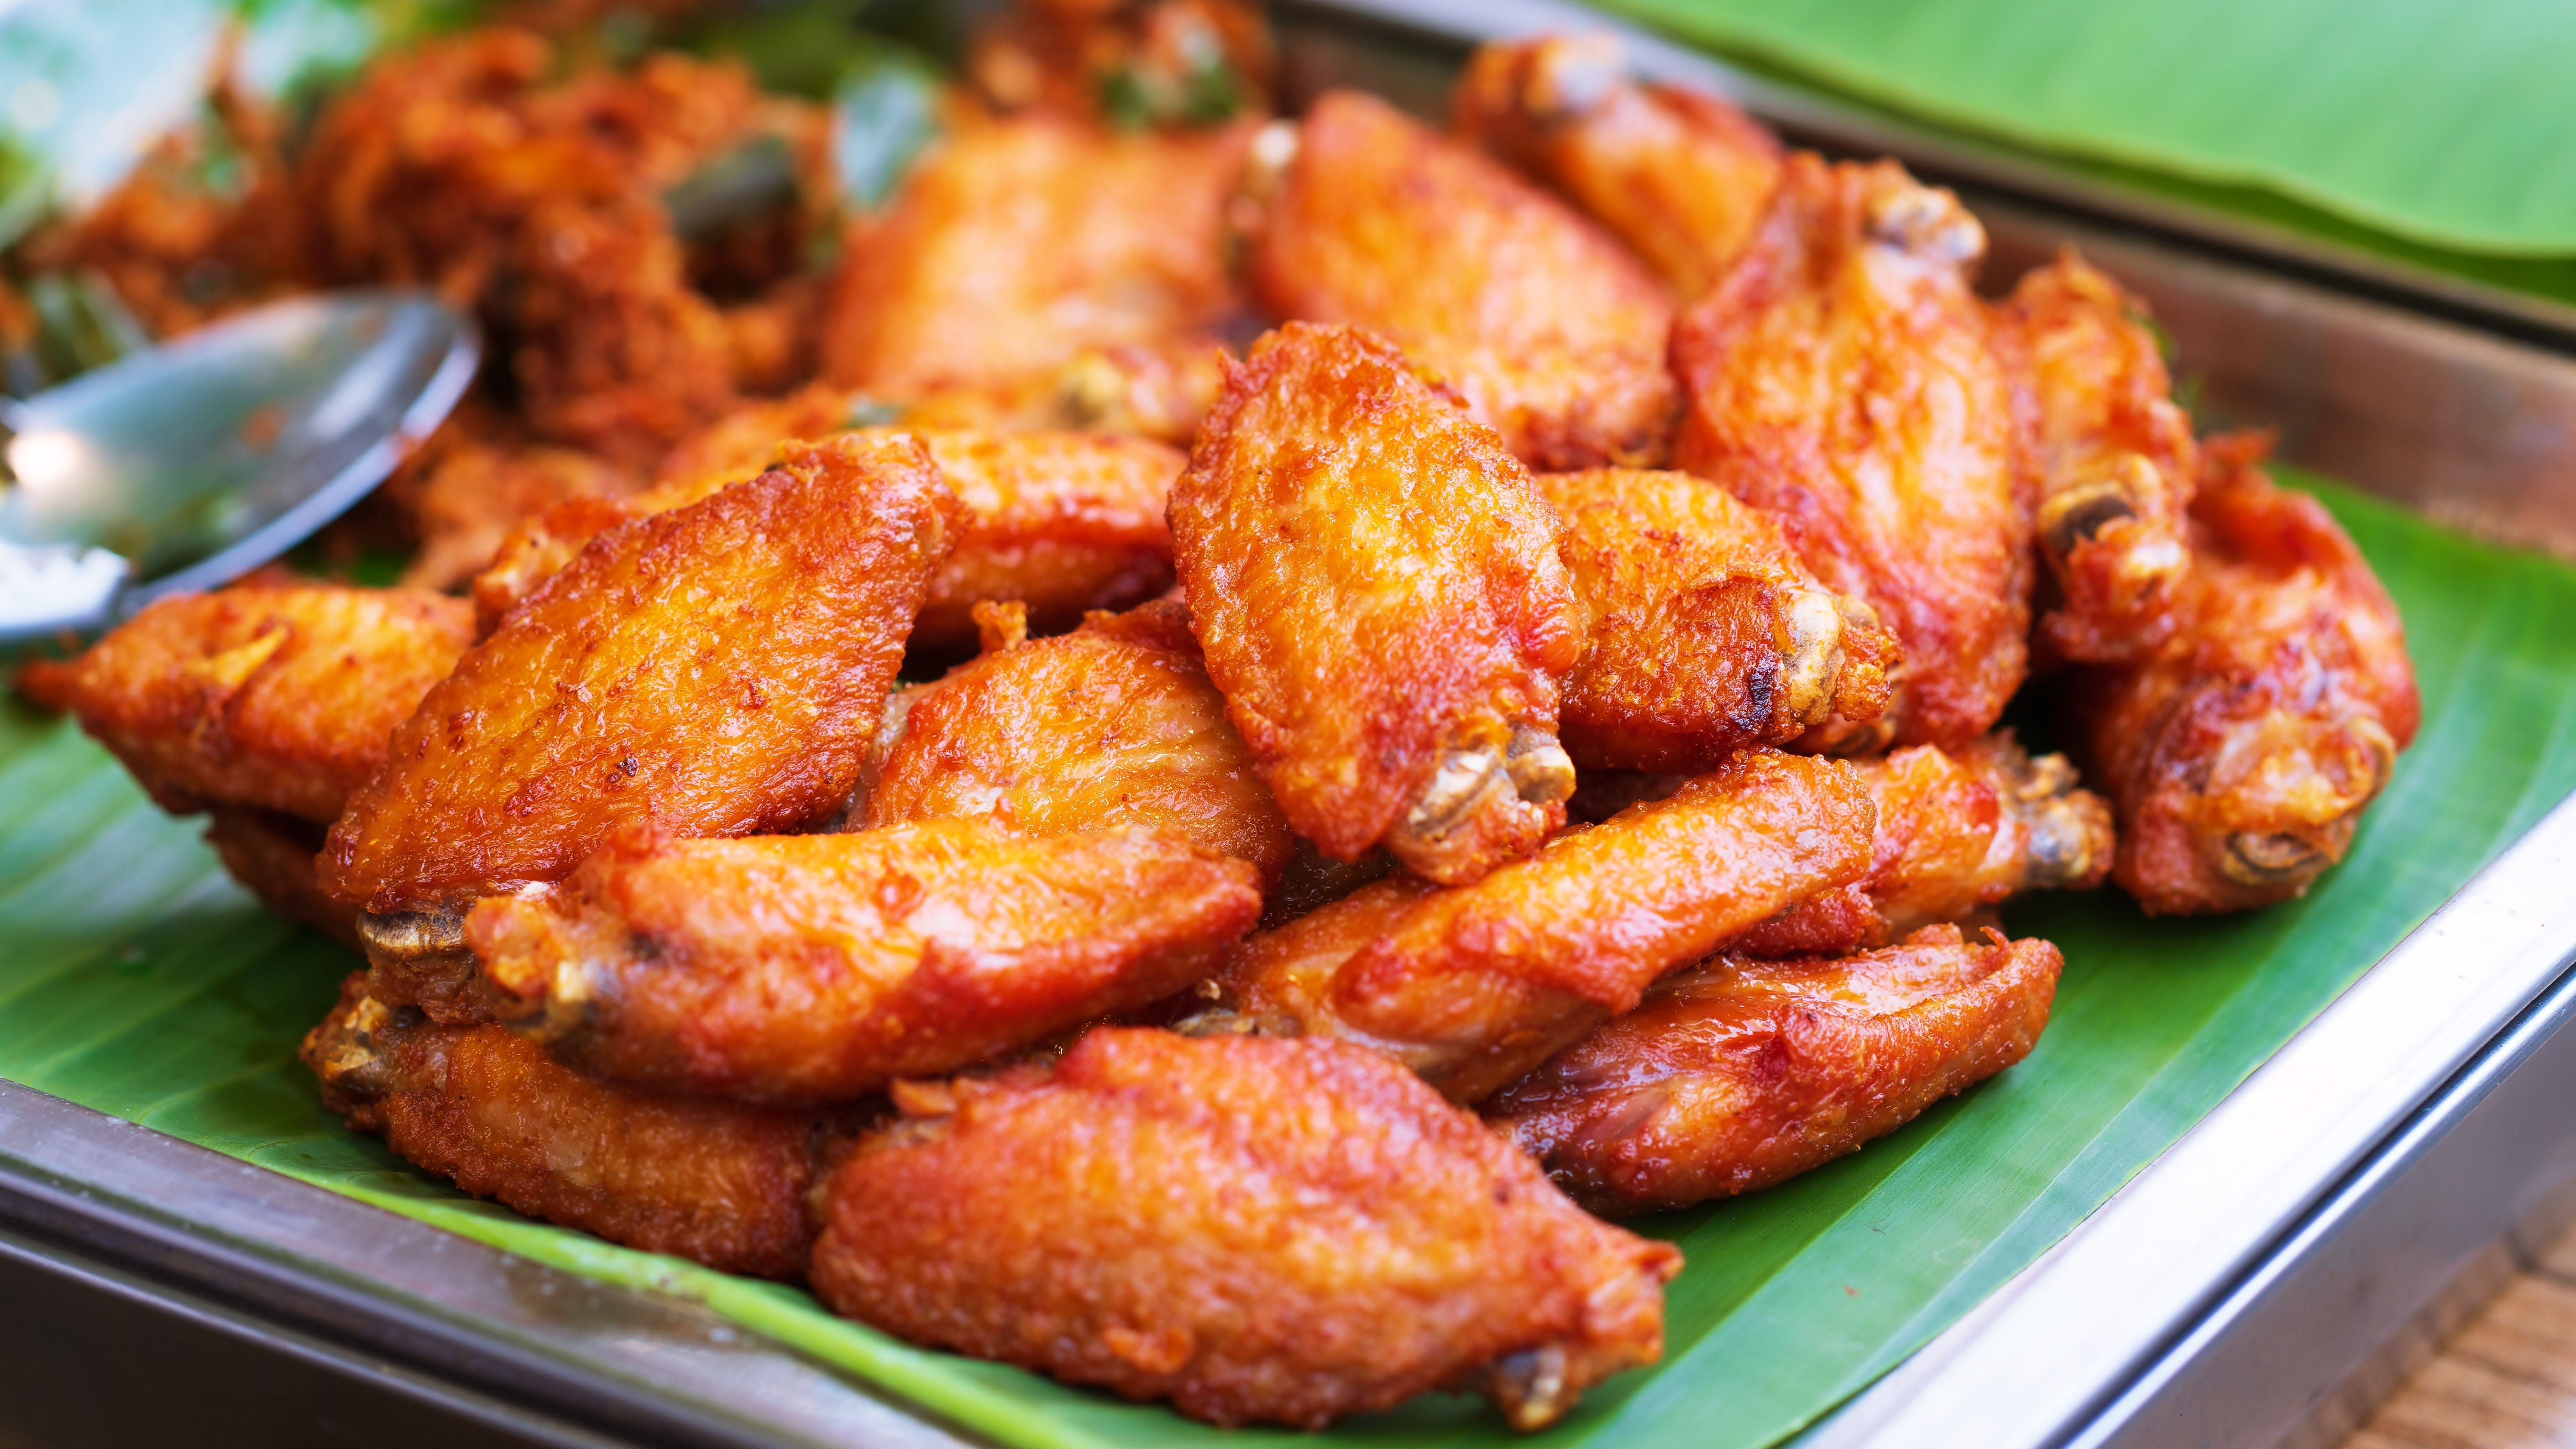 NY restaurant owner on chicken shortage: Wing costs up nearly 100%